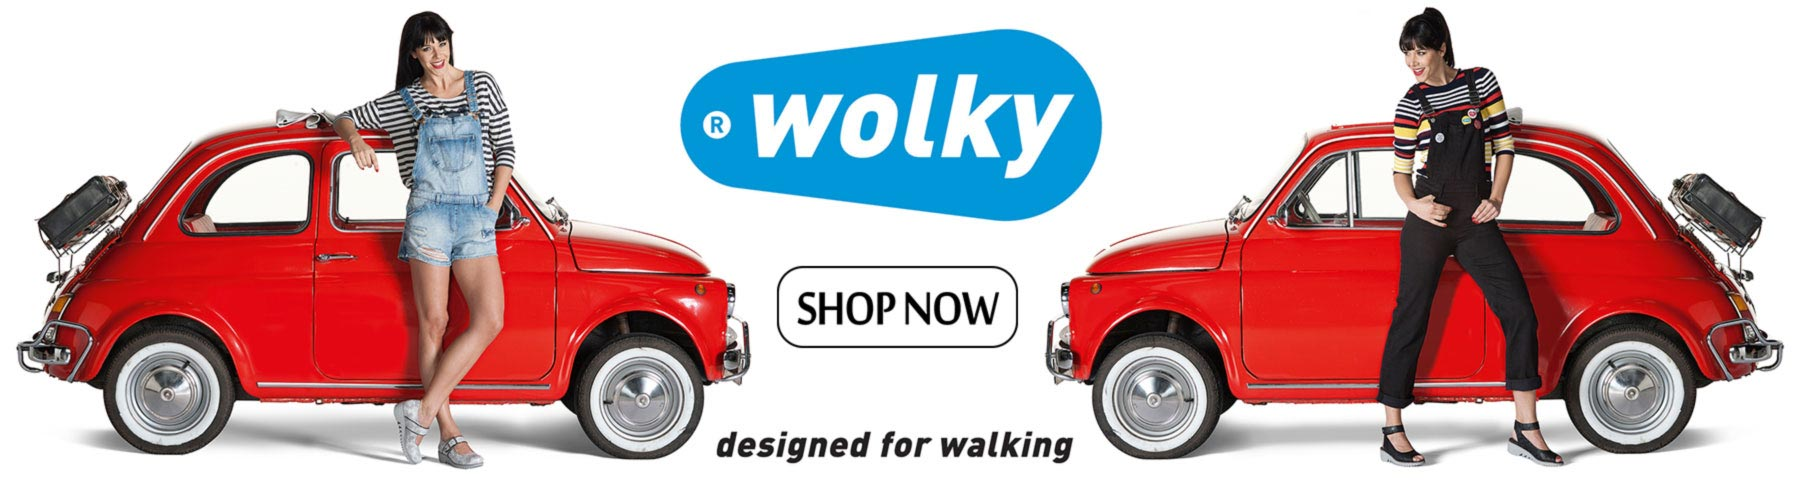 shop now wolky online shoes